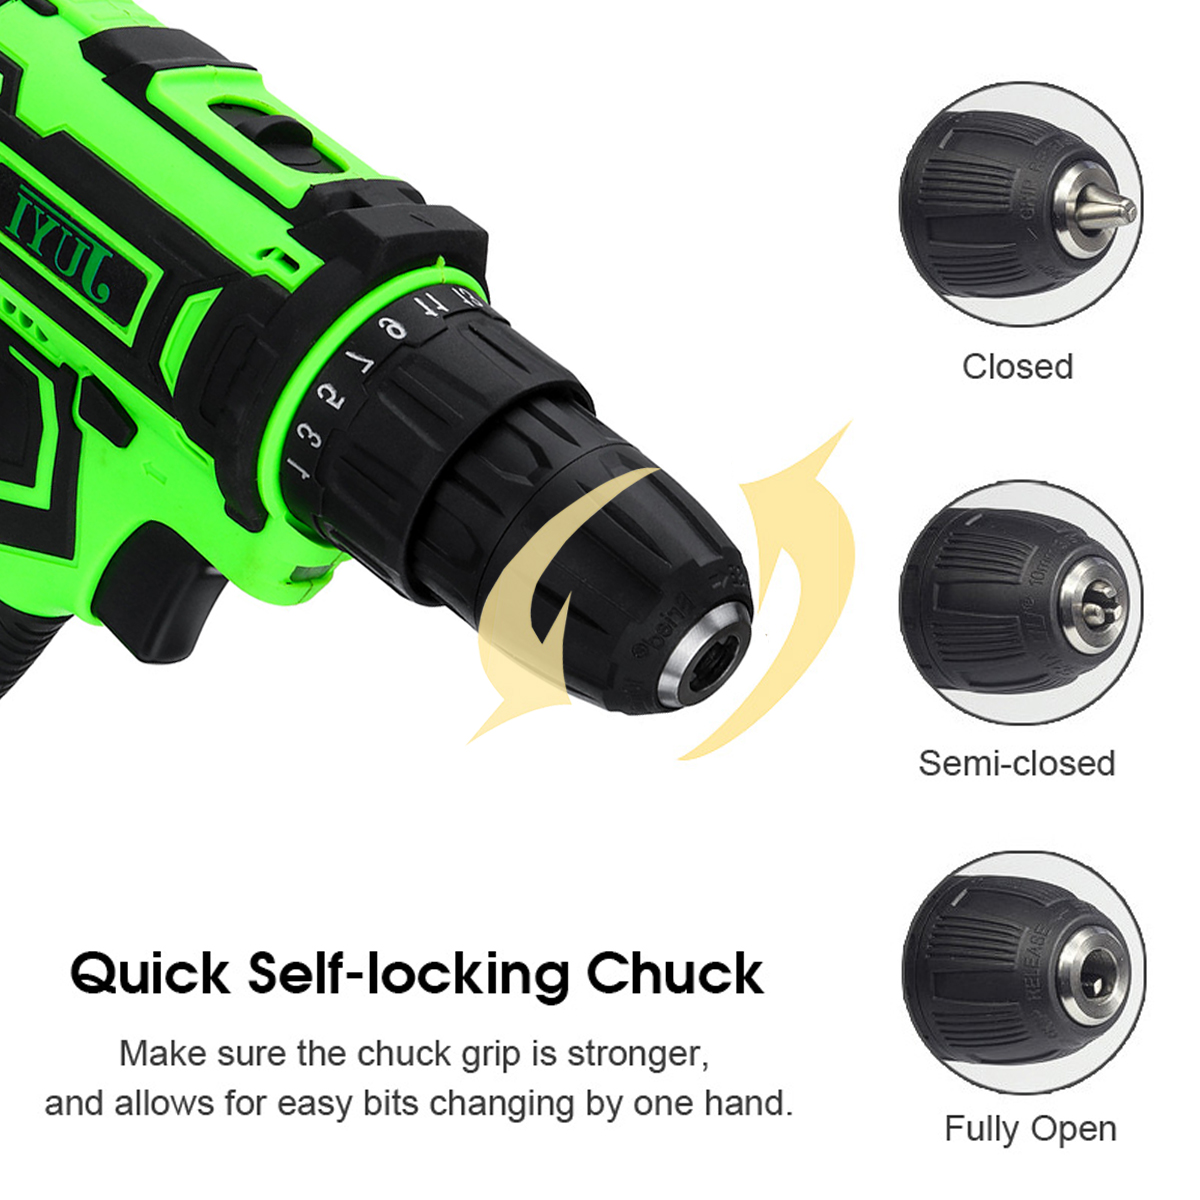 JUYI 12V/24V Lithium Battery Power Drill Cordless Rechargeable 2 Speed Electric Driver Drill